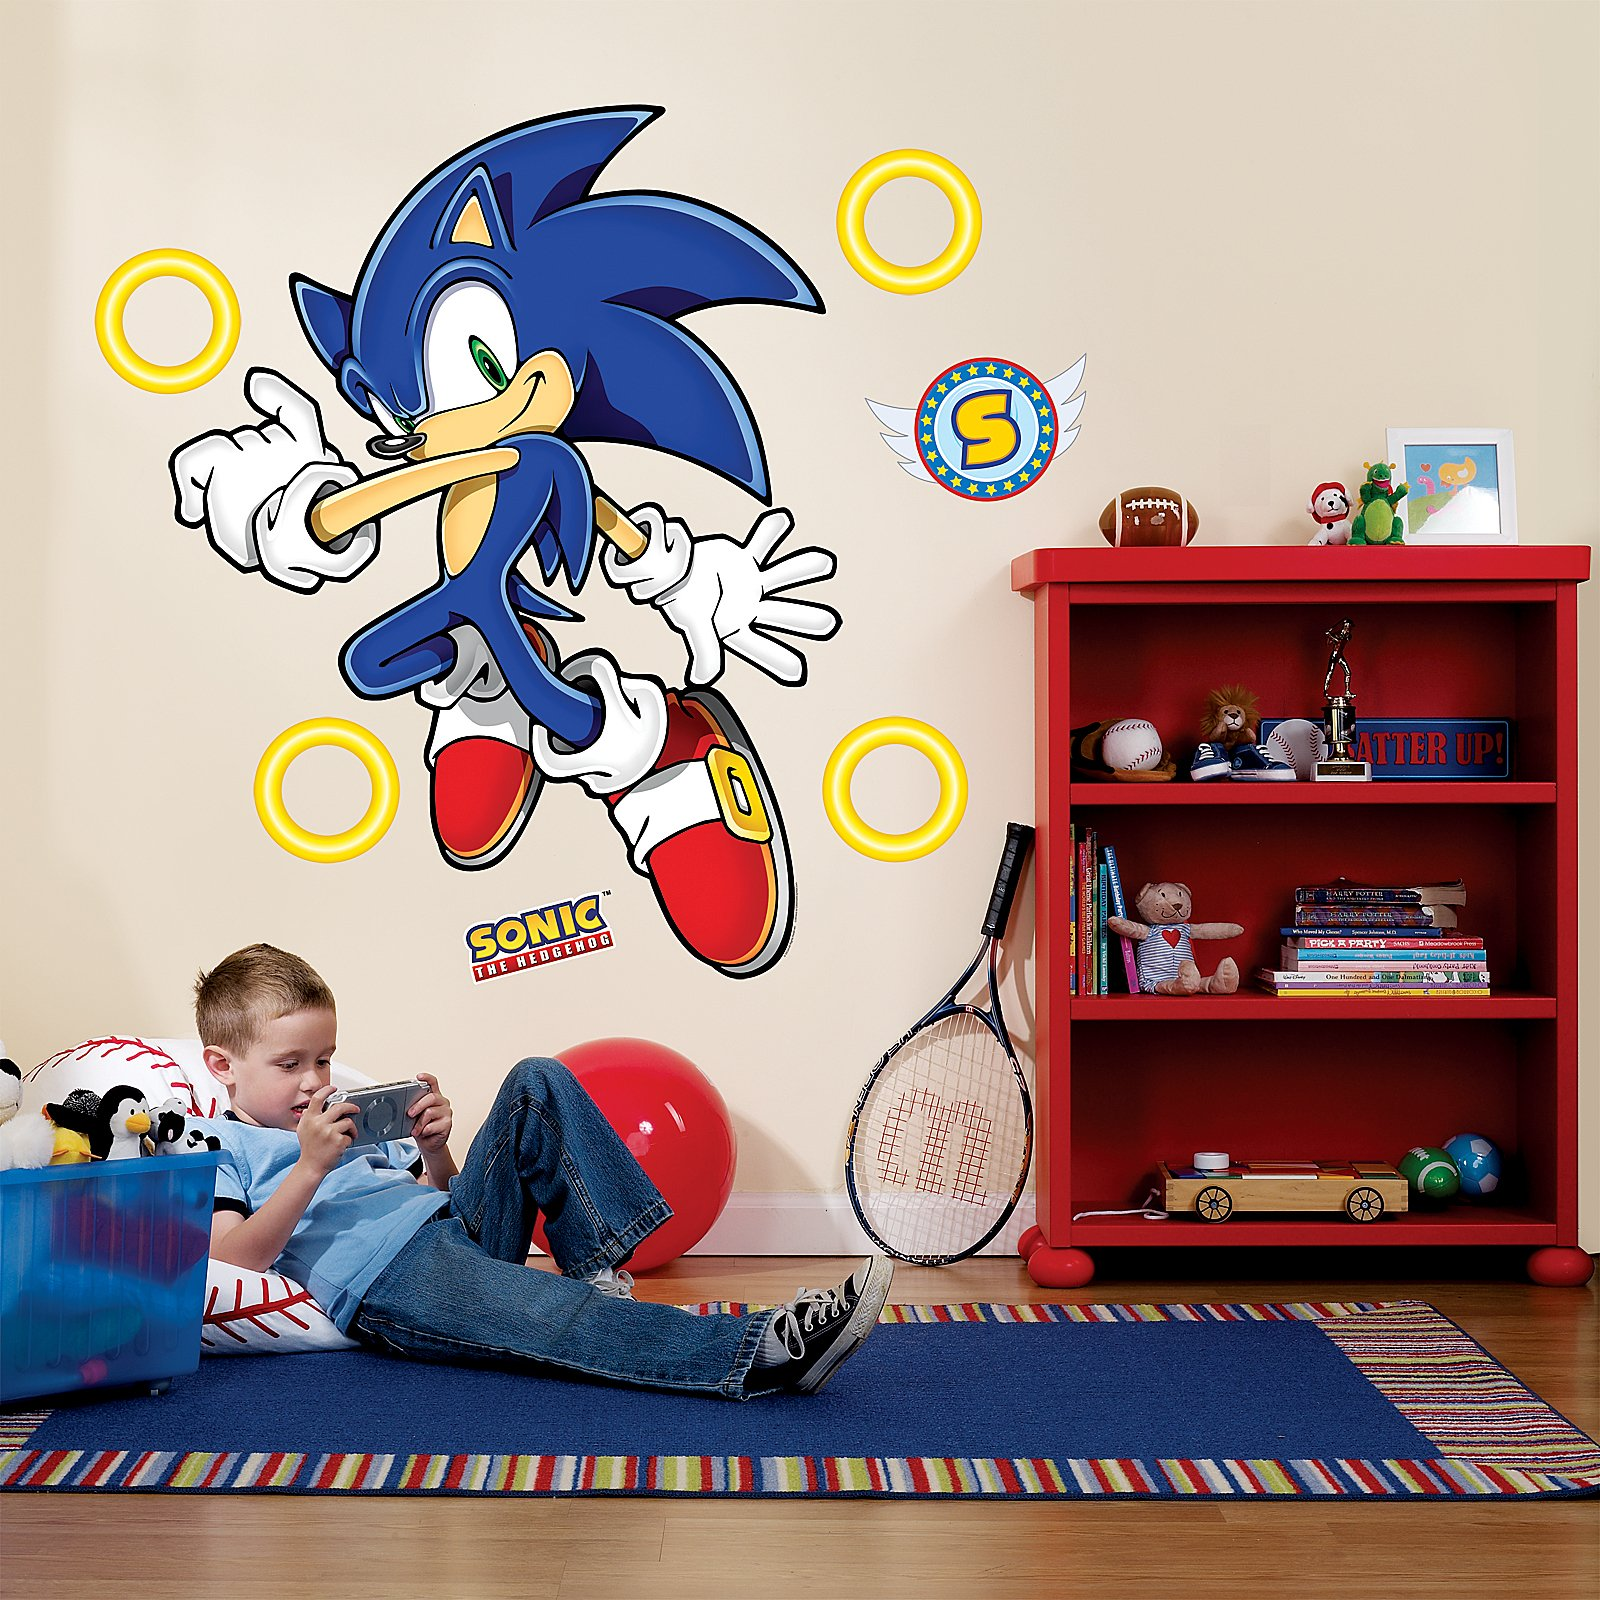 Sonic The Hedgehog Room Decor - Giant Wall Decals by BirthdayExpress